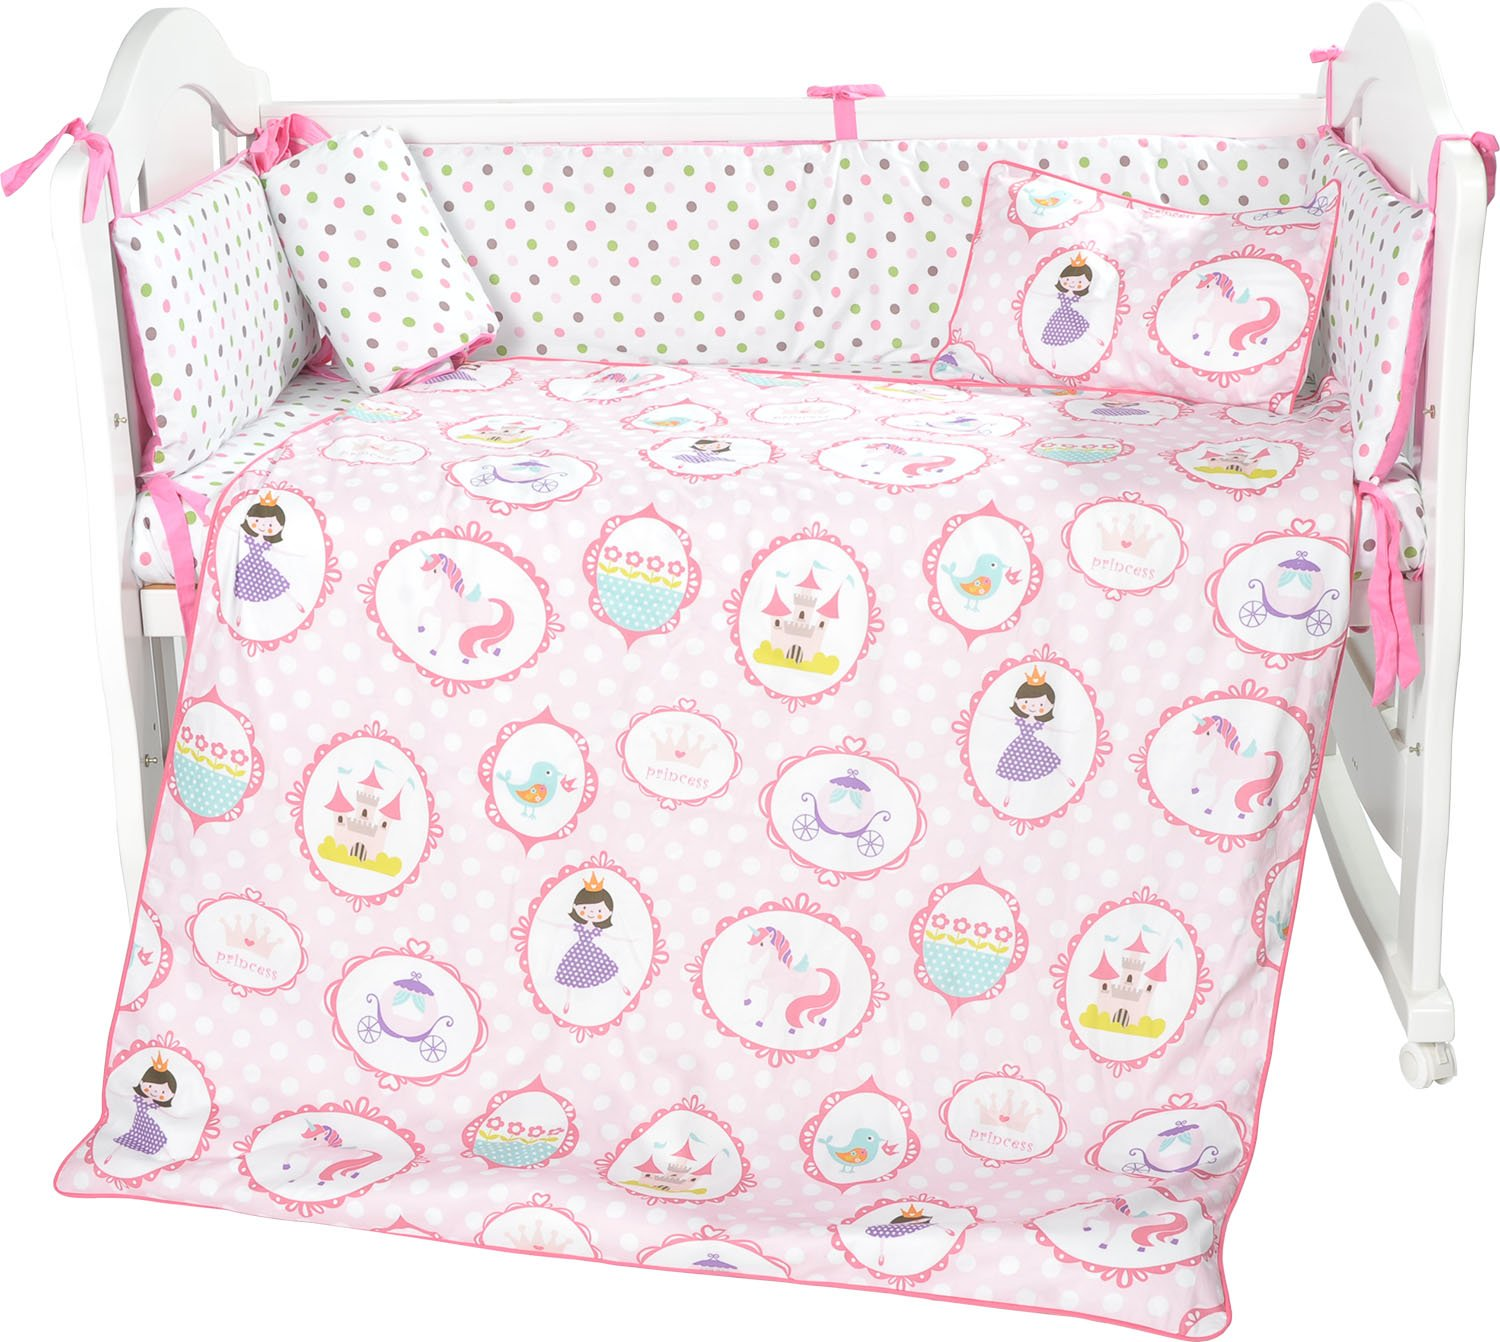 i-baby 5 Piece Crib Bedding Set Nursery Baby Bedding Set 100% Cotton Printed Sheet Duvet Pillow Bumper Cot Sets for Boys or Girls